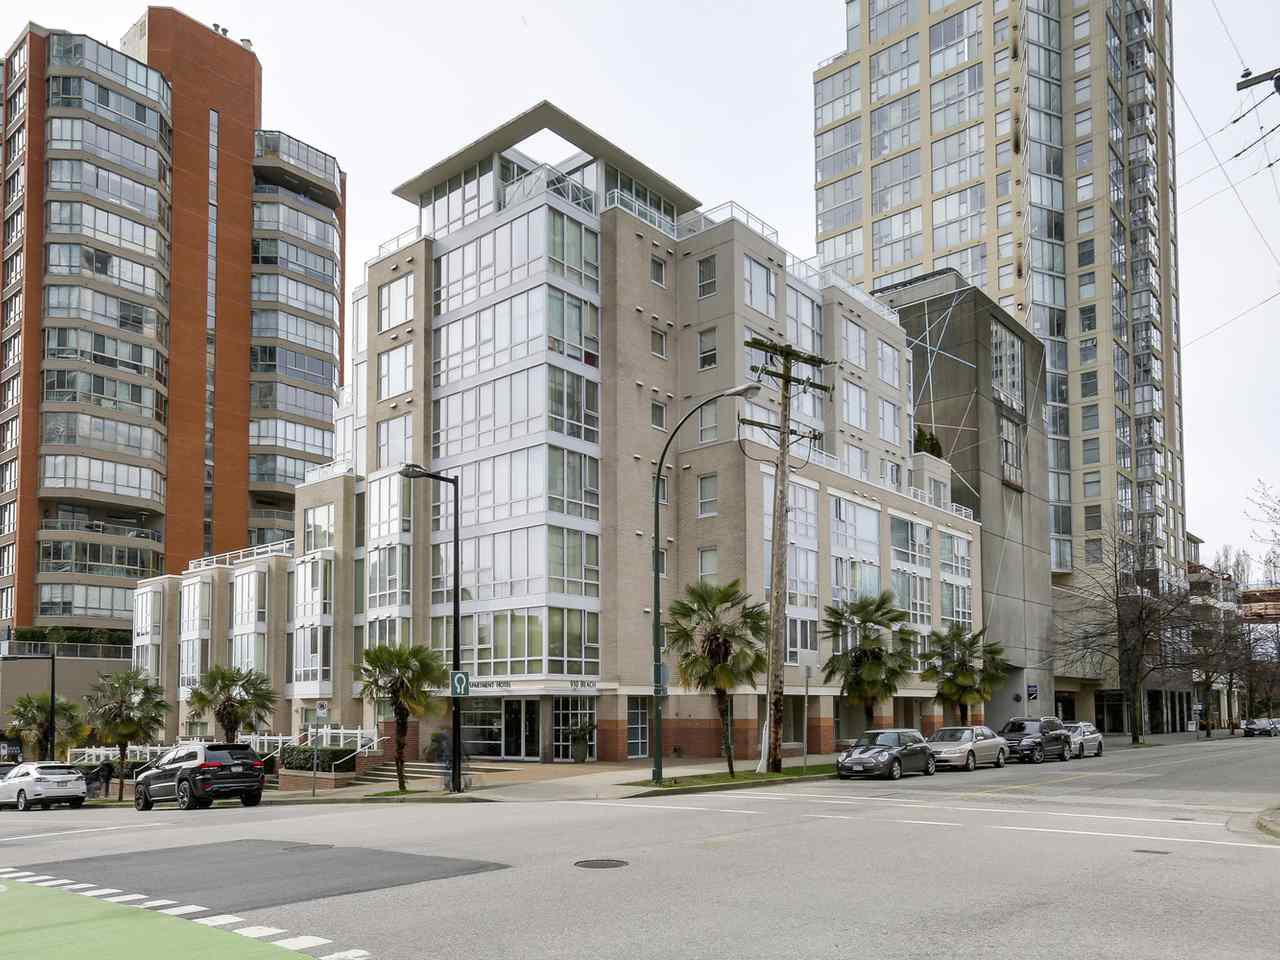 Main Photo: 920 910 BEACH Avenue in Vancouver: Yaletown Townhouse for sale (Vancouver West)  : MLS®# R2149914